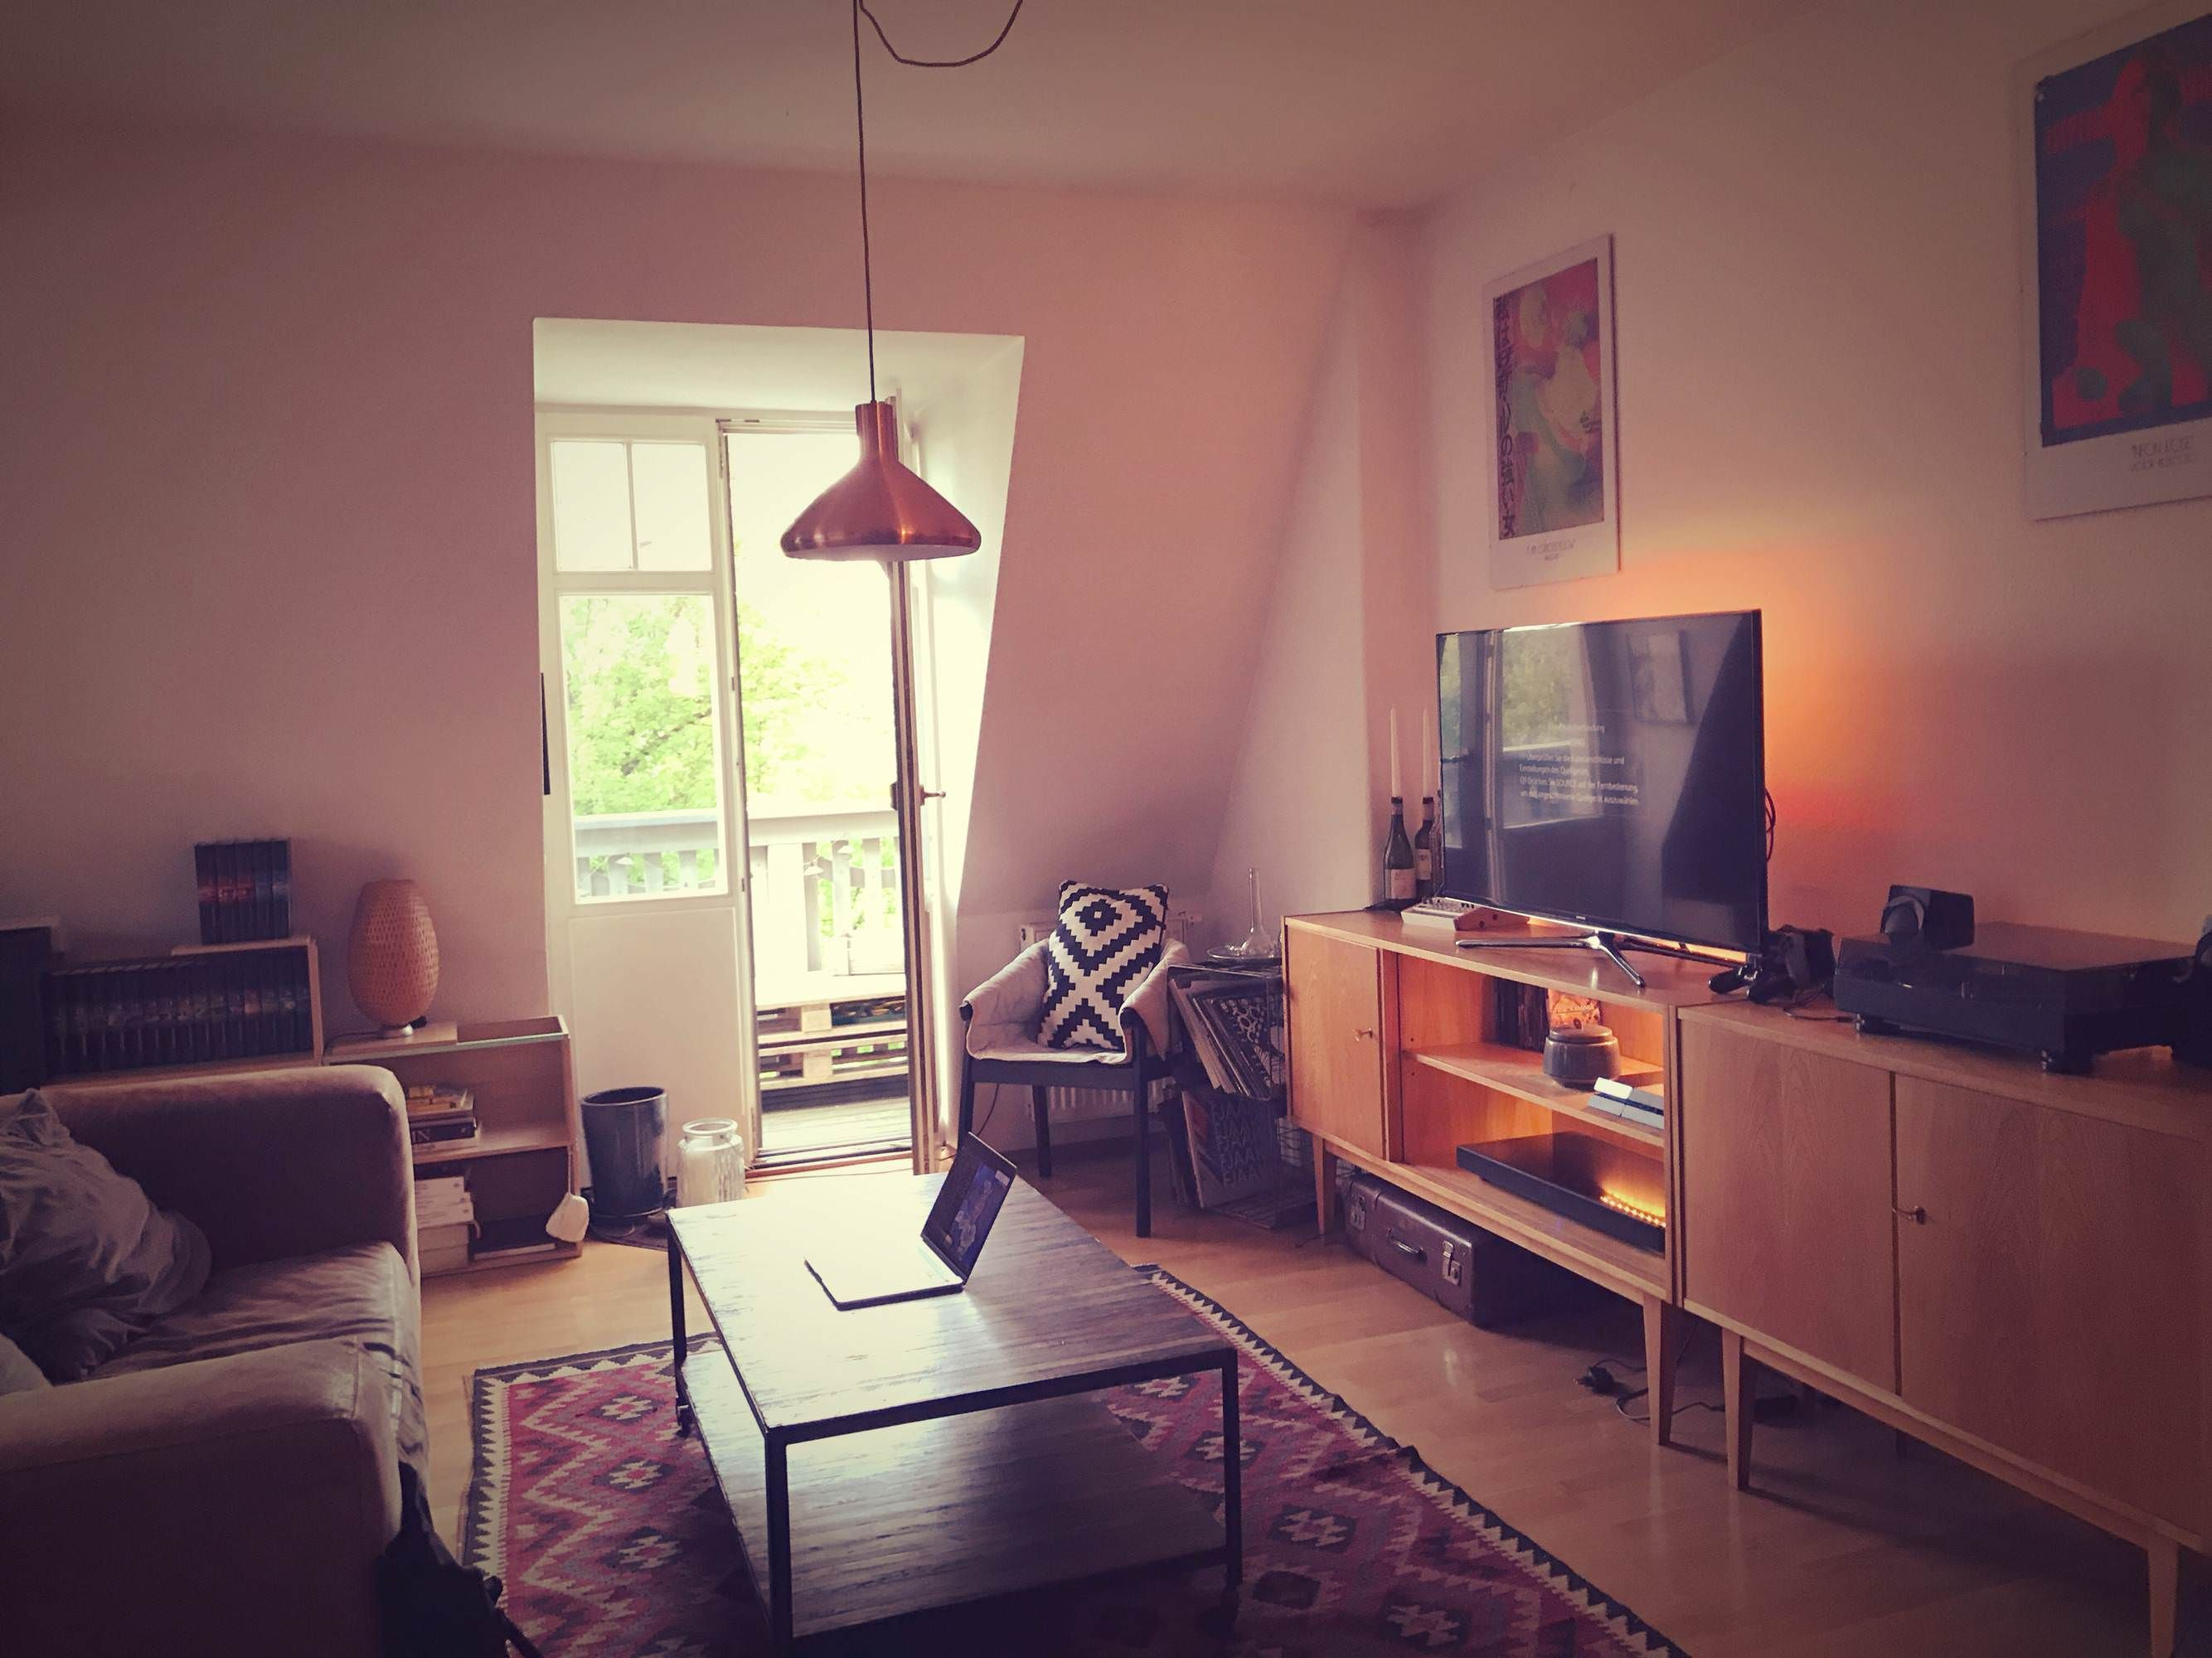 I Am So Glad To Live Here My Apartment In Germany Malelivingspace Interior Design Interior Design